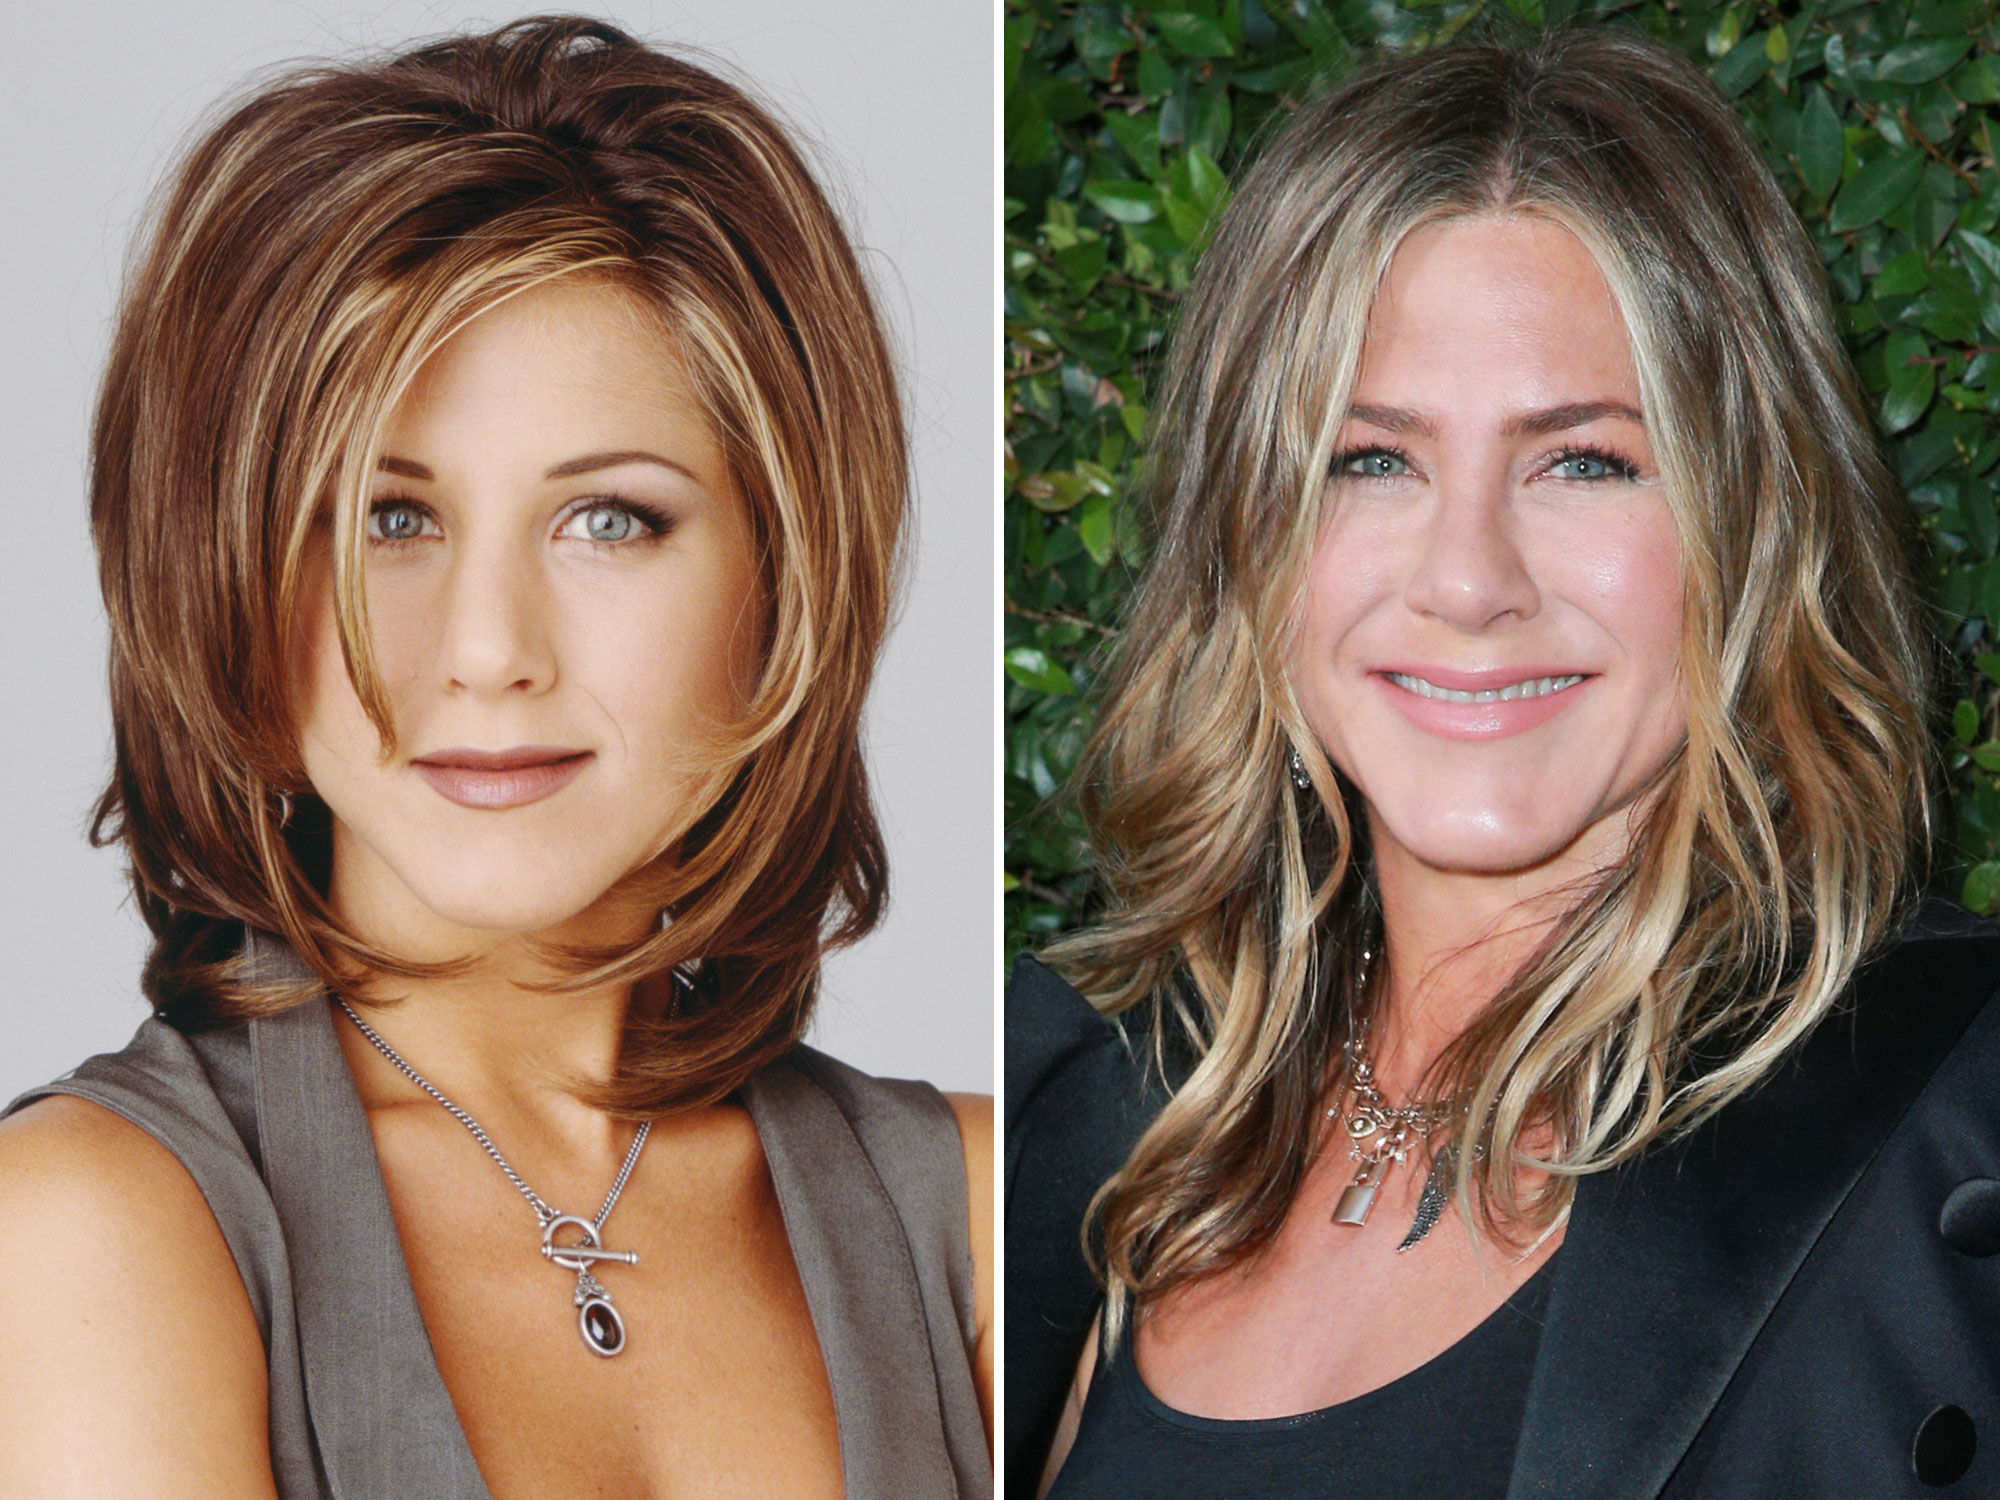 Get Ready for the Friends Reunion! See the Stars Then and Now